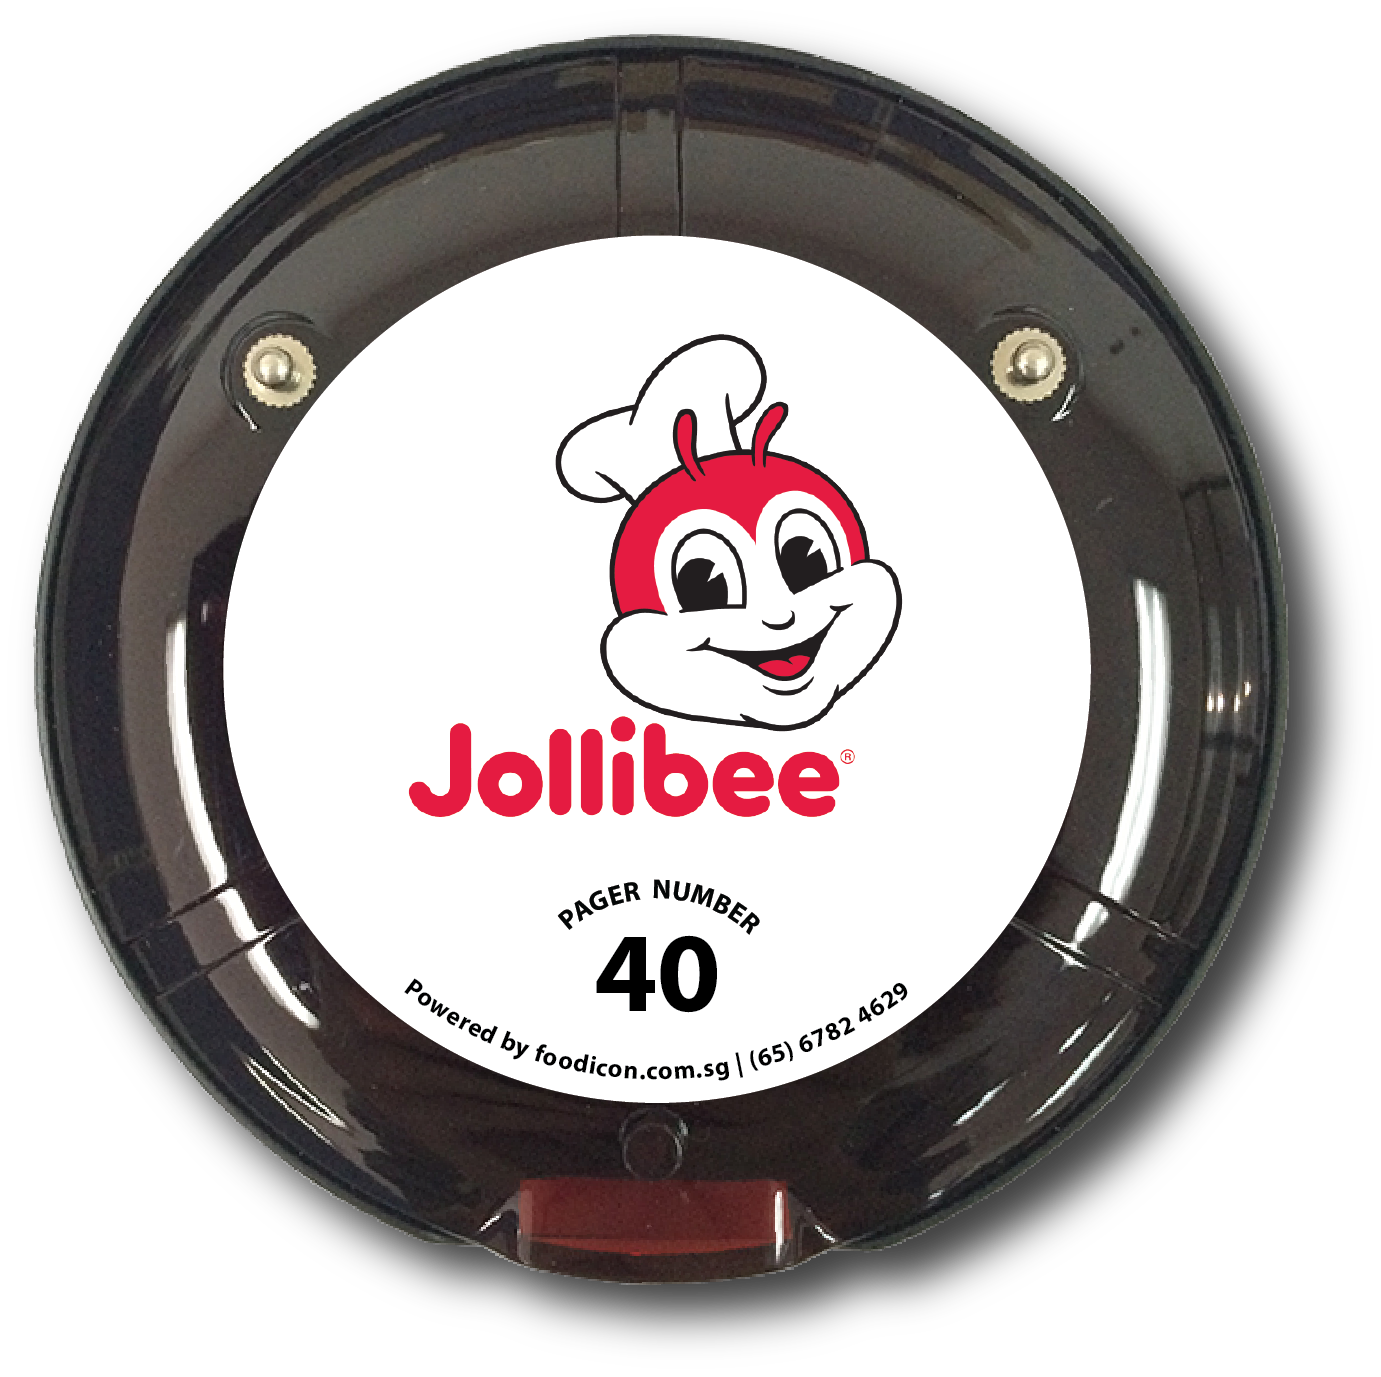 Food Icon Paging System - Jollibee